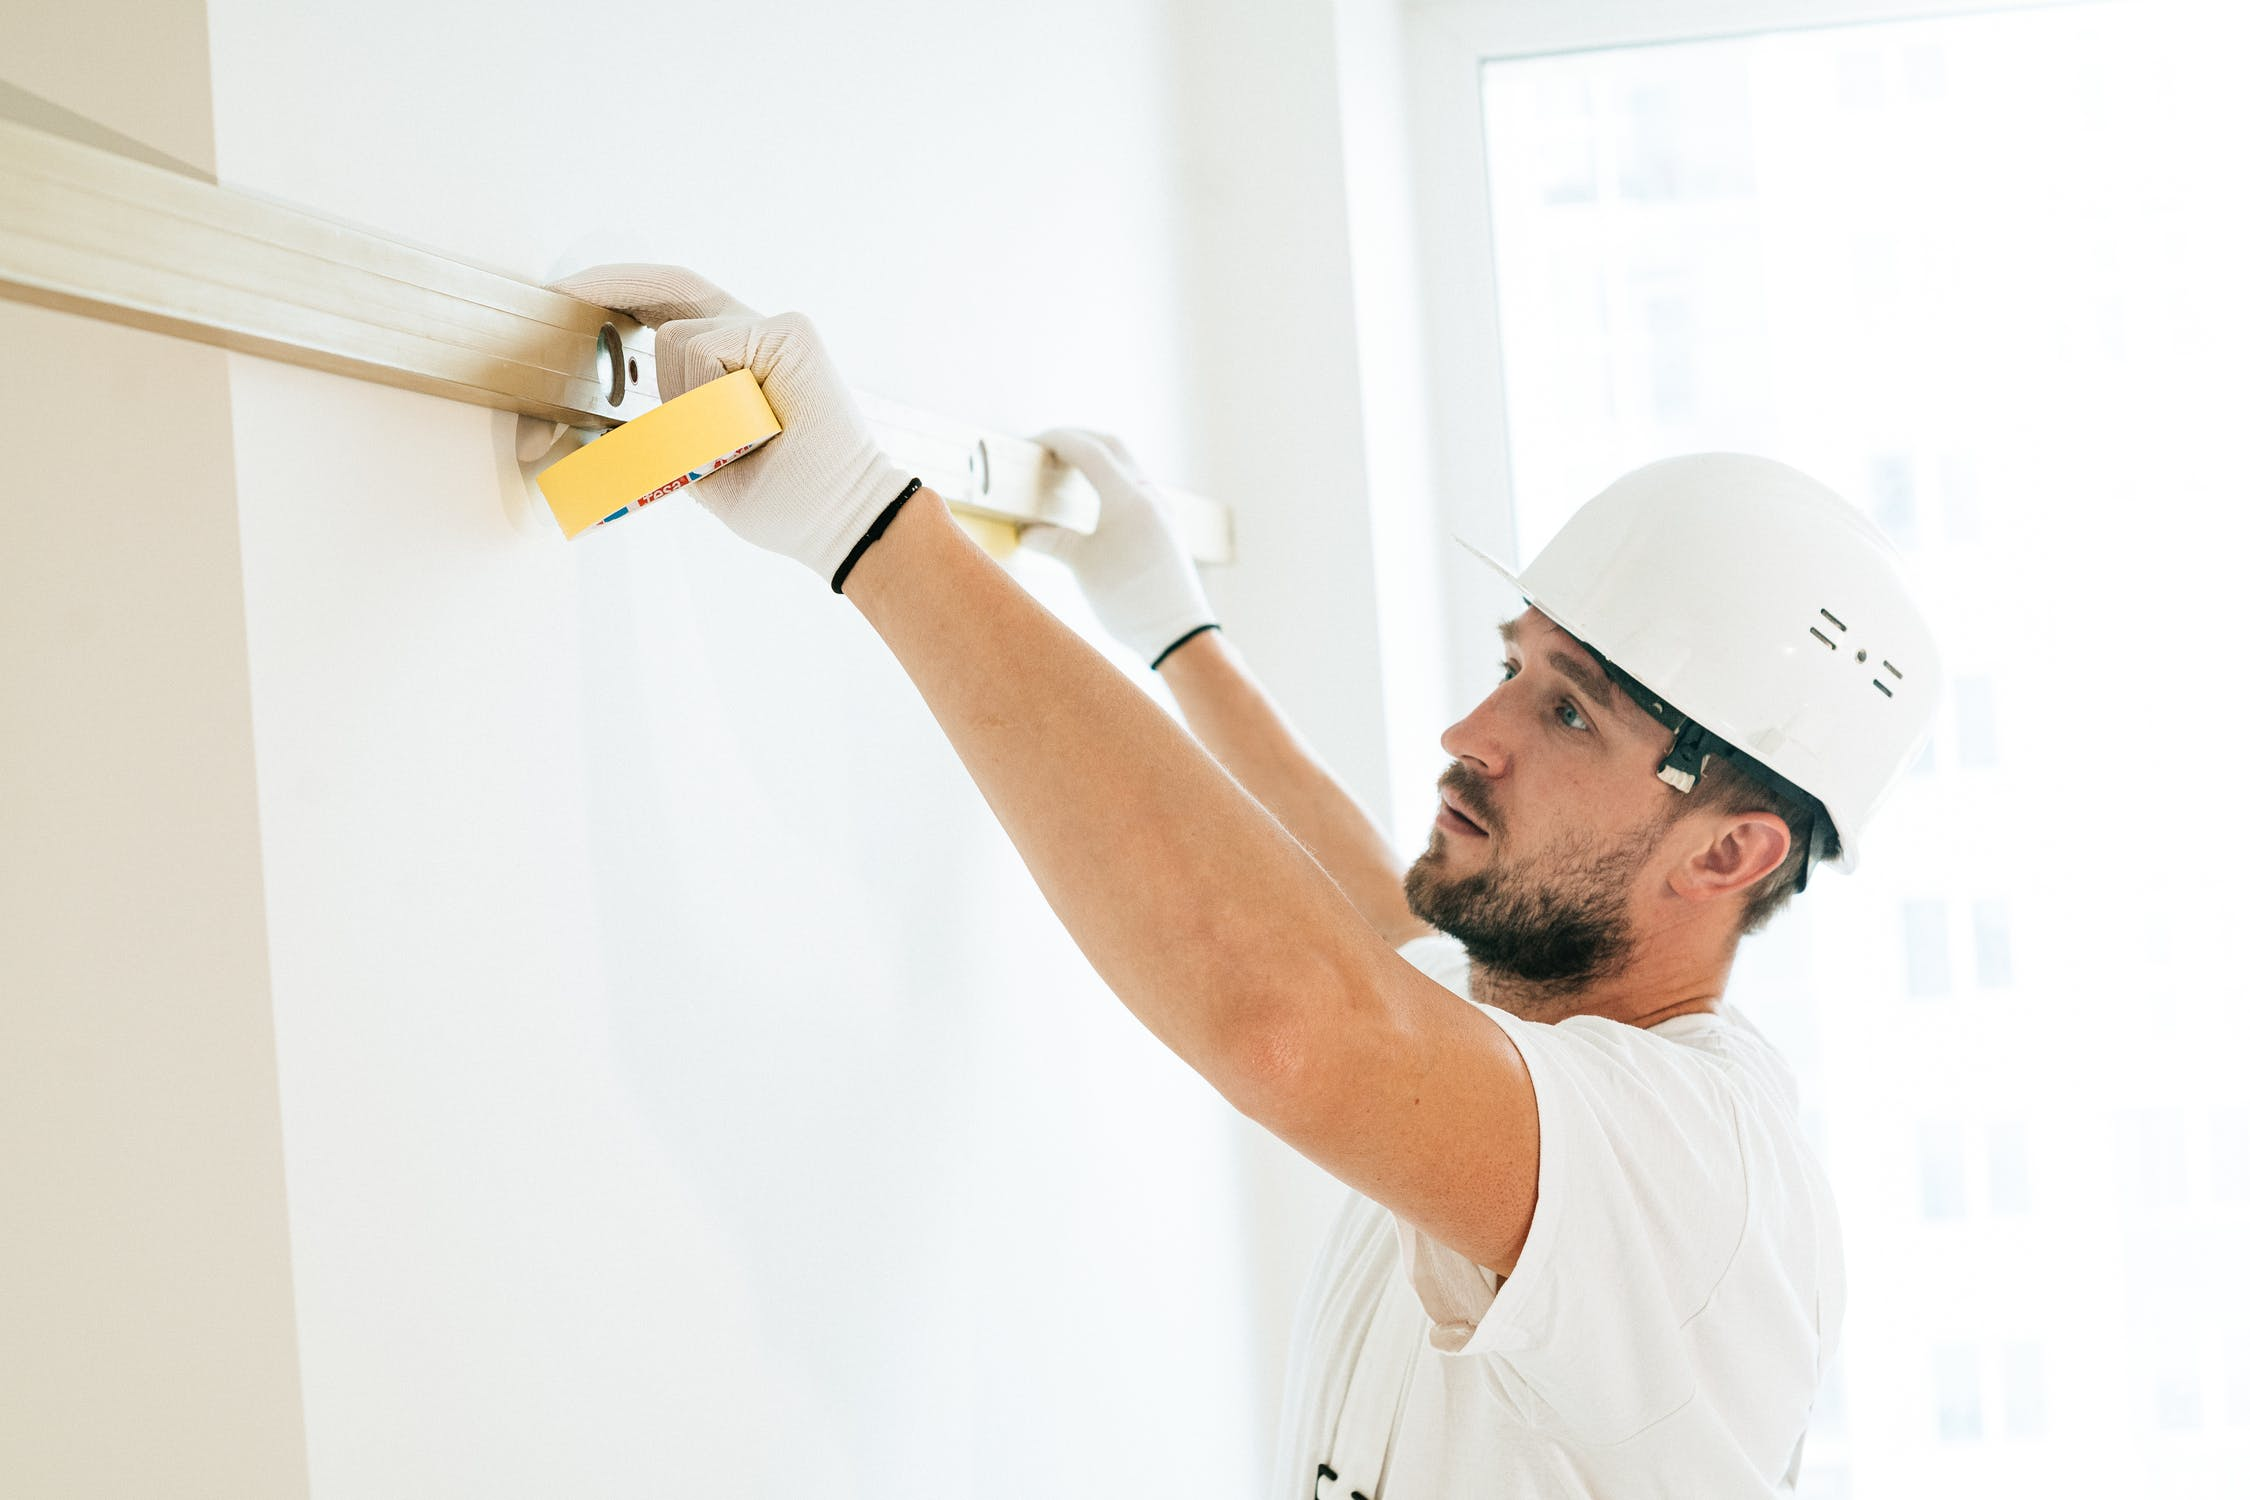 Remodeling Your Home? How to Make Sure Not to Miss Anything